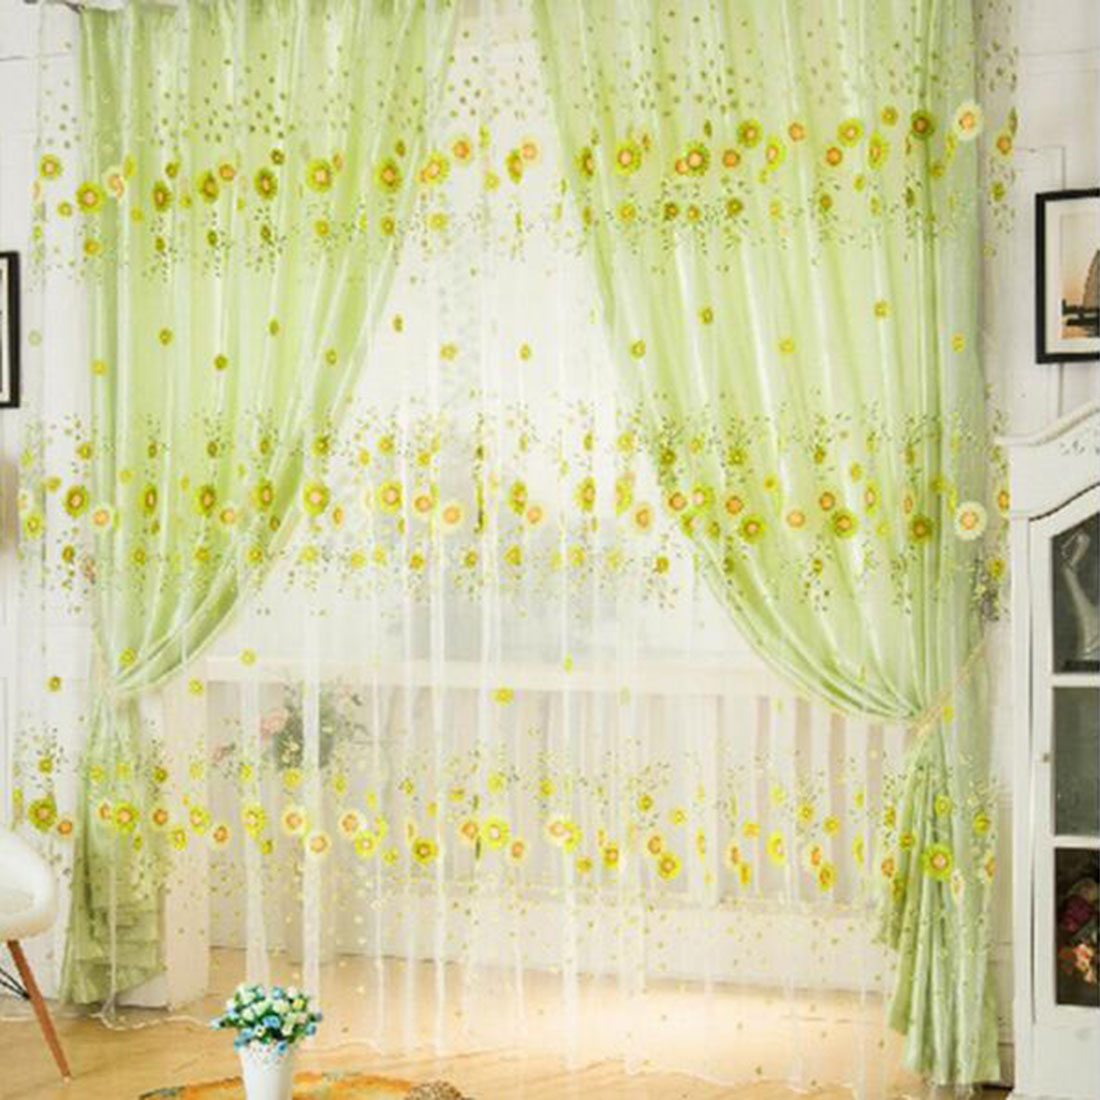 Window screening balcony finished product burnout design flower tulle curtain for living room sunflower kitchen curtains in curtains from home garden on